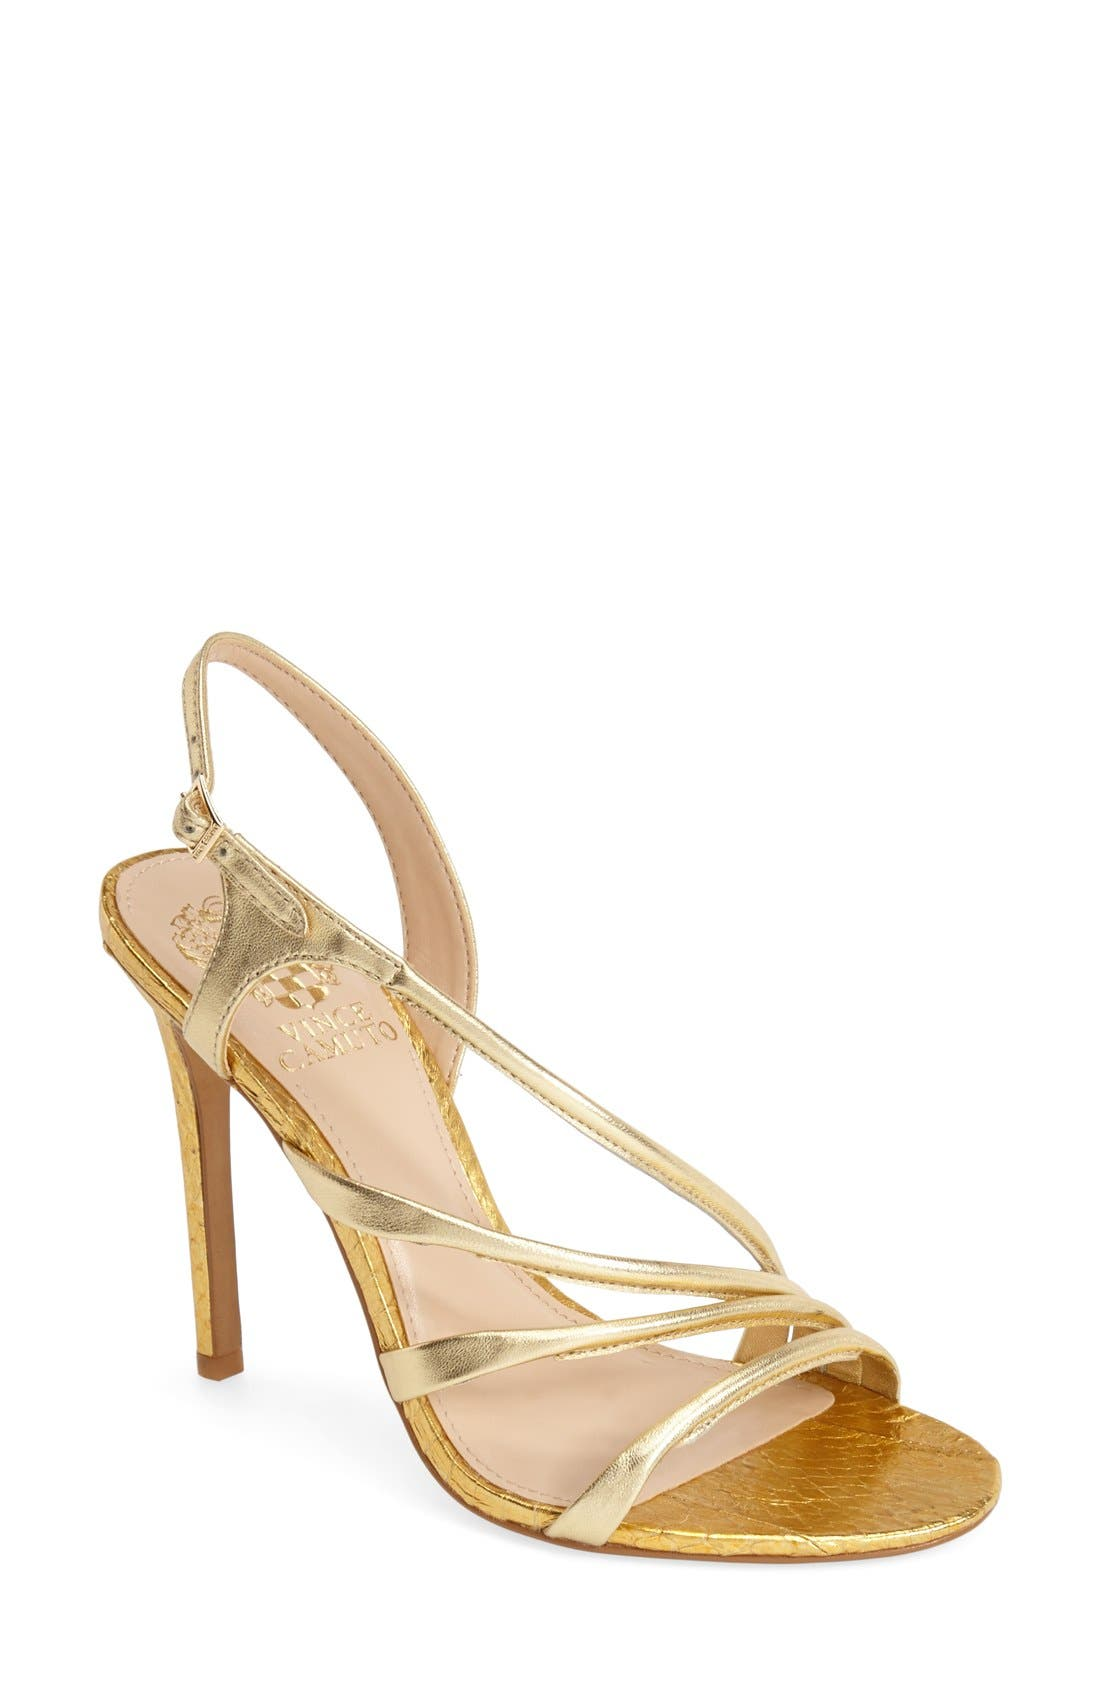 'Tiernan' Strappy Leather Sandal,                         Main,                         color, Gold